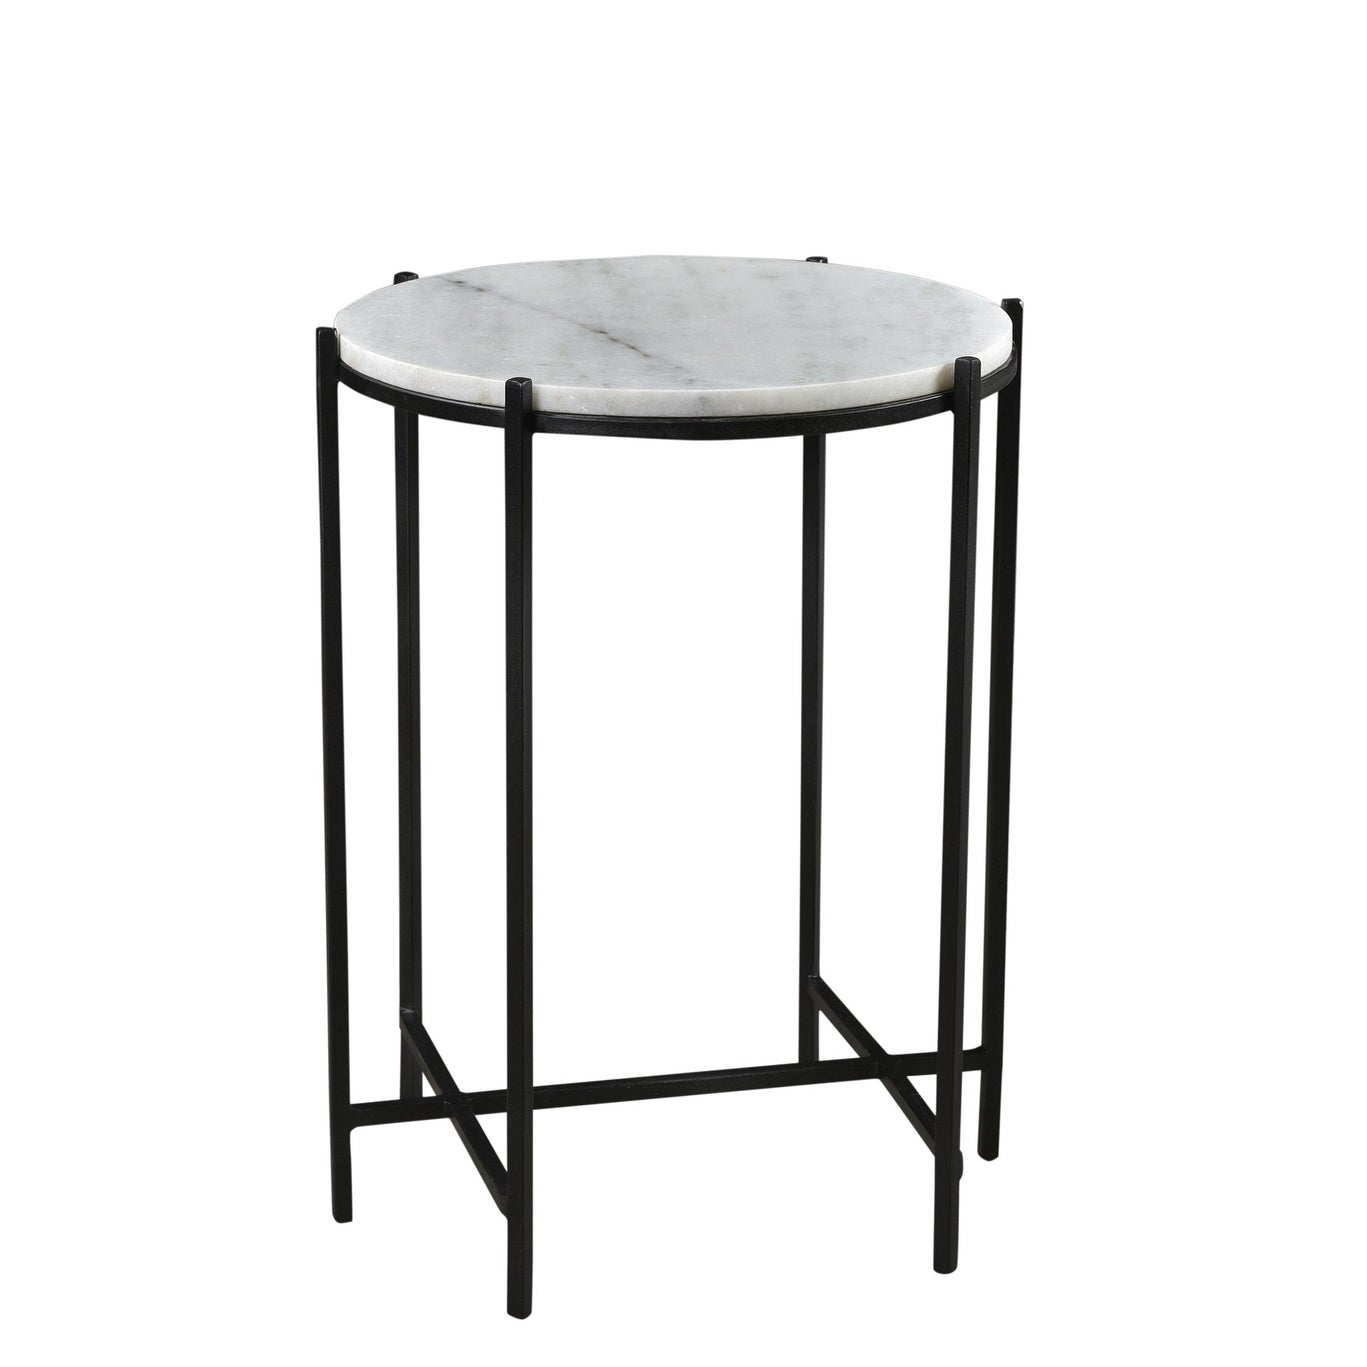 - Shop Bengal Manor Iron And Marble Accent Table - Overstock - 28795276